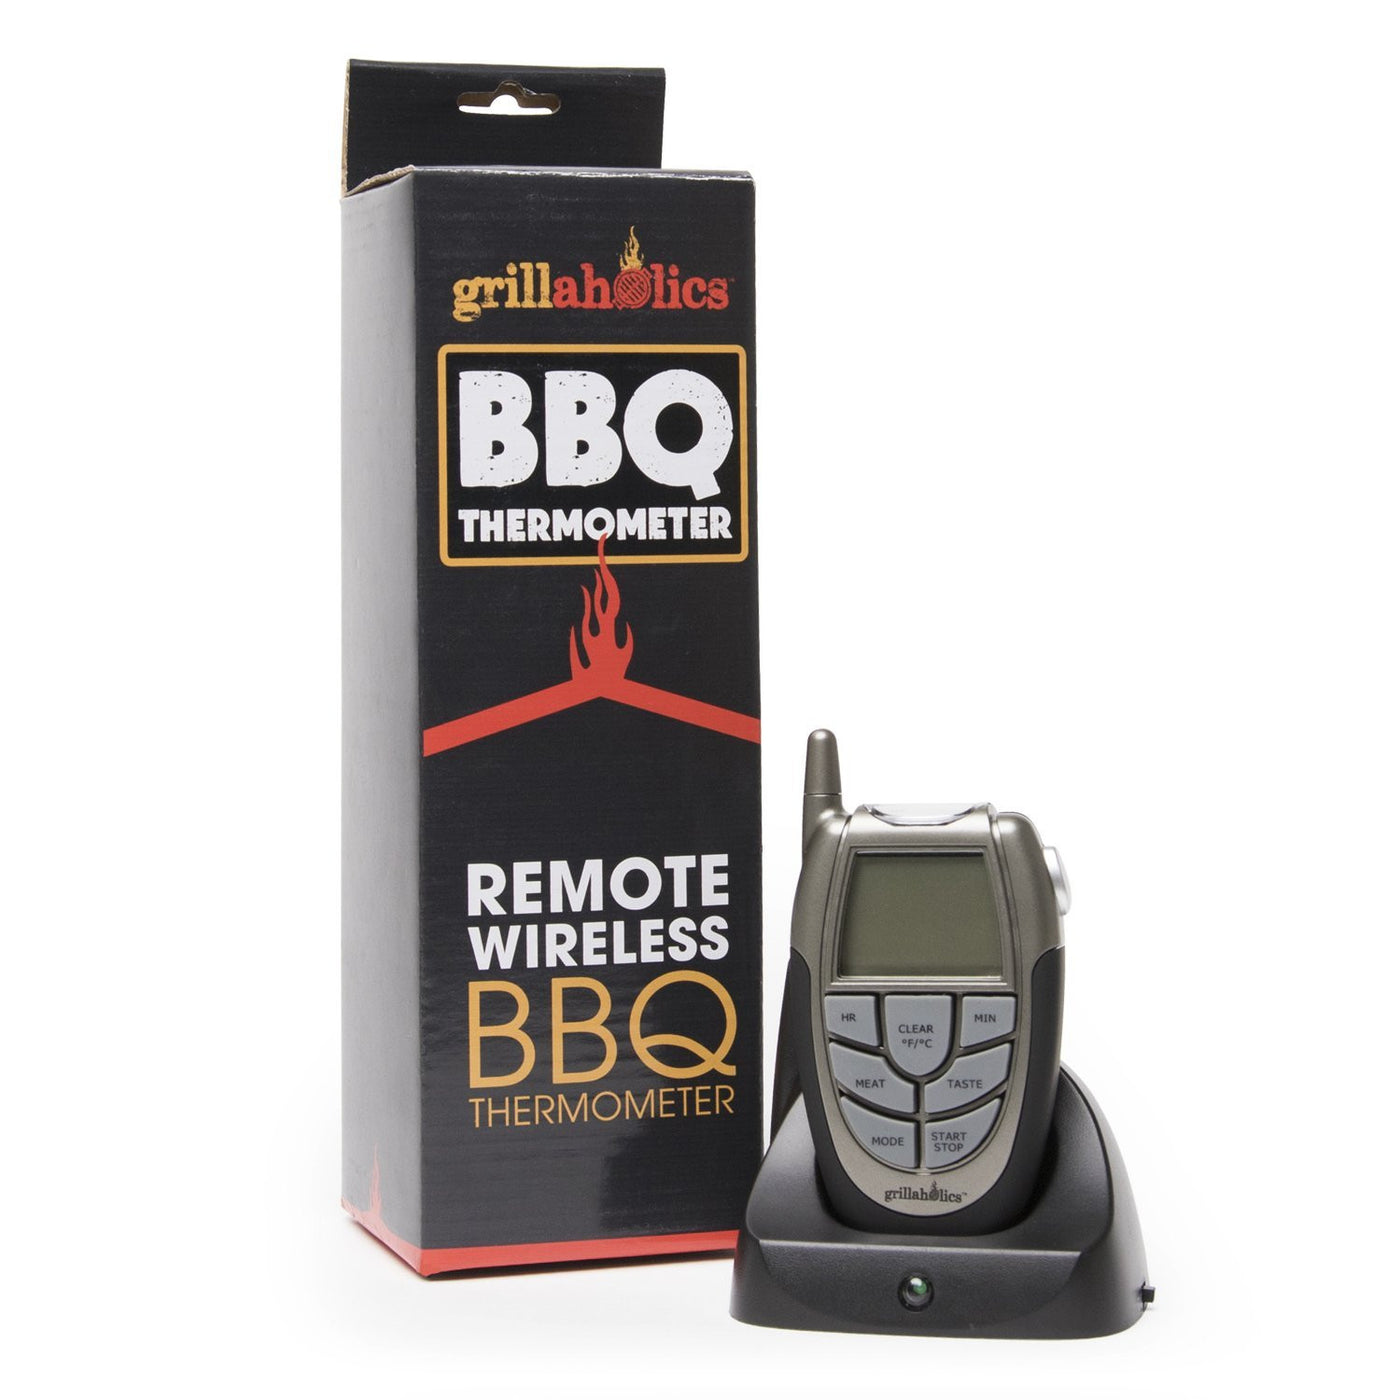 Grillaholics BBQ Thermometer